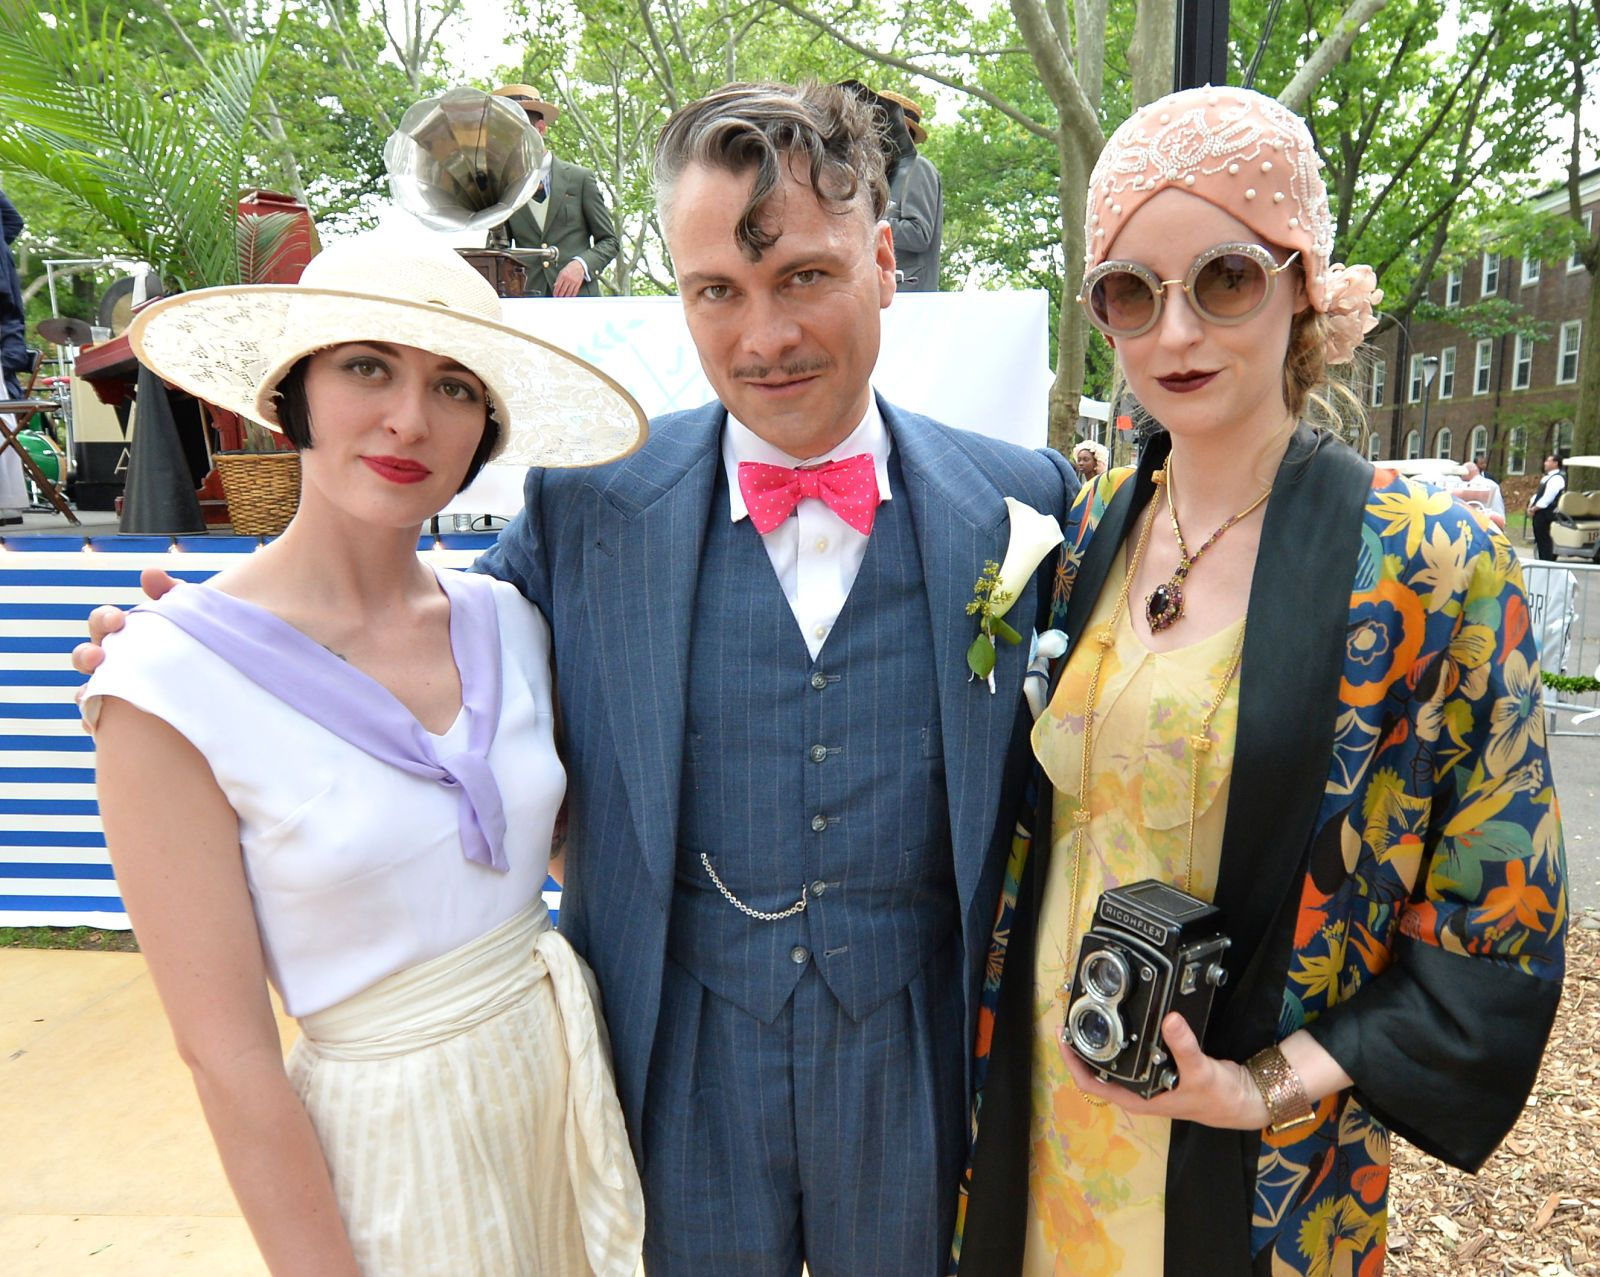 The Prettiest Vintage Looks From New York's Jazz Age Lawn Party is part of lawn Party New York - This weekend New Yorkers stepped back in time to party like it was 1925